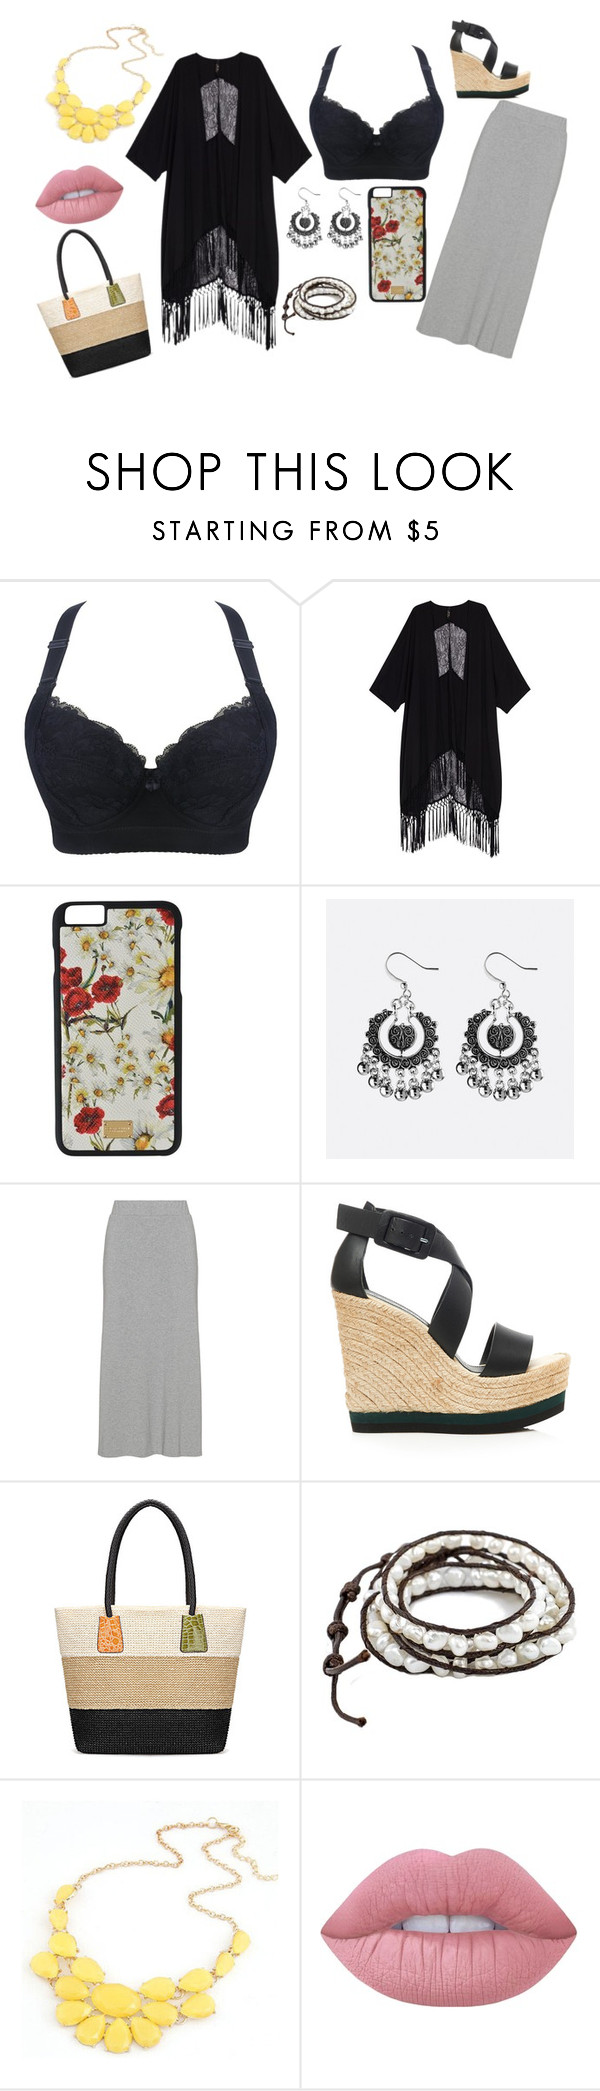 """""""Night beach"""" by nicoleluna-99 on Polyvore featuring moda, Melissa McCarthy Seven7, Dolce&Gabbana, Avenue, Palomitas by Paloma Barceló y Lime Crime"""